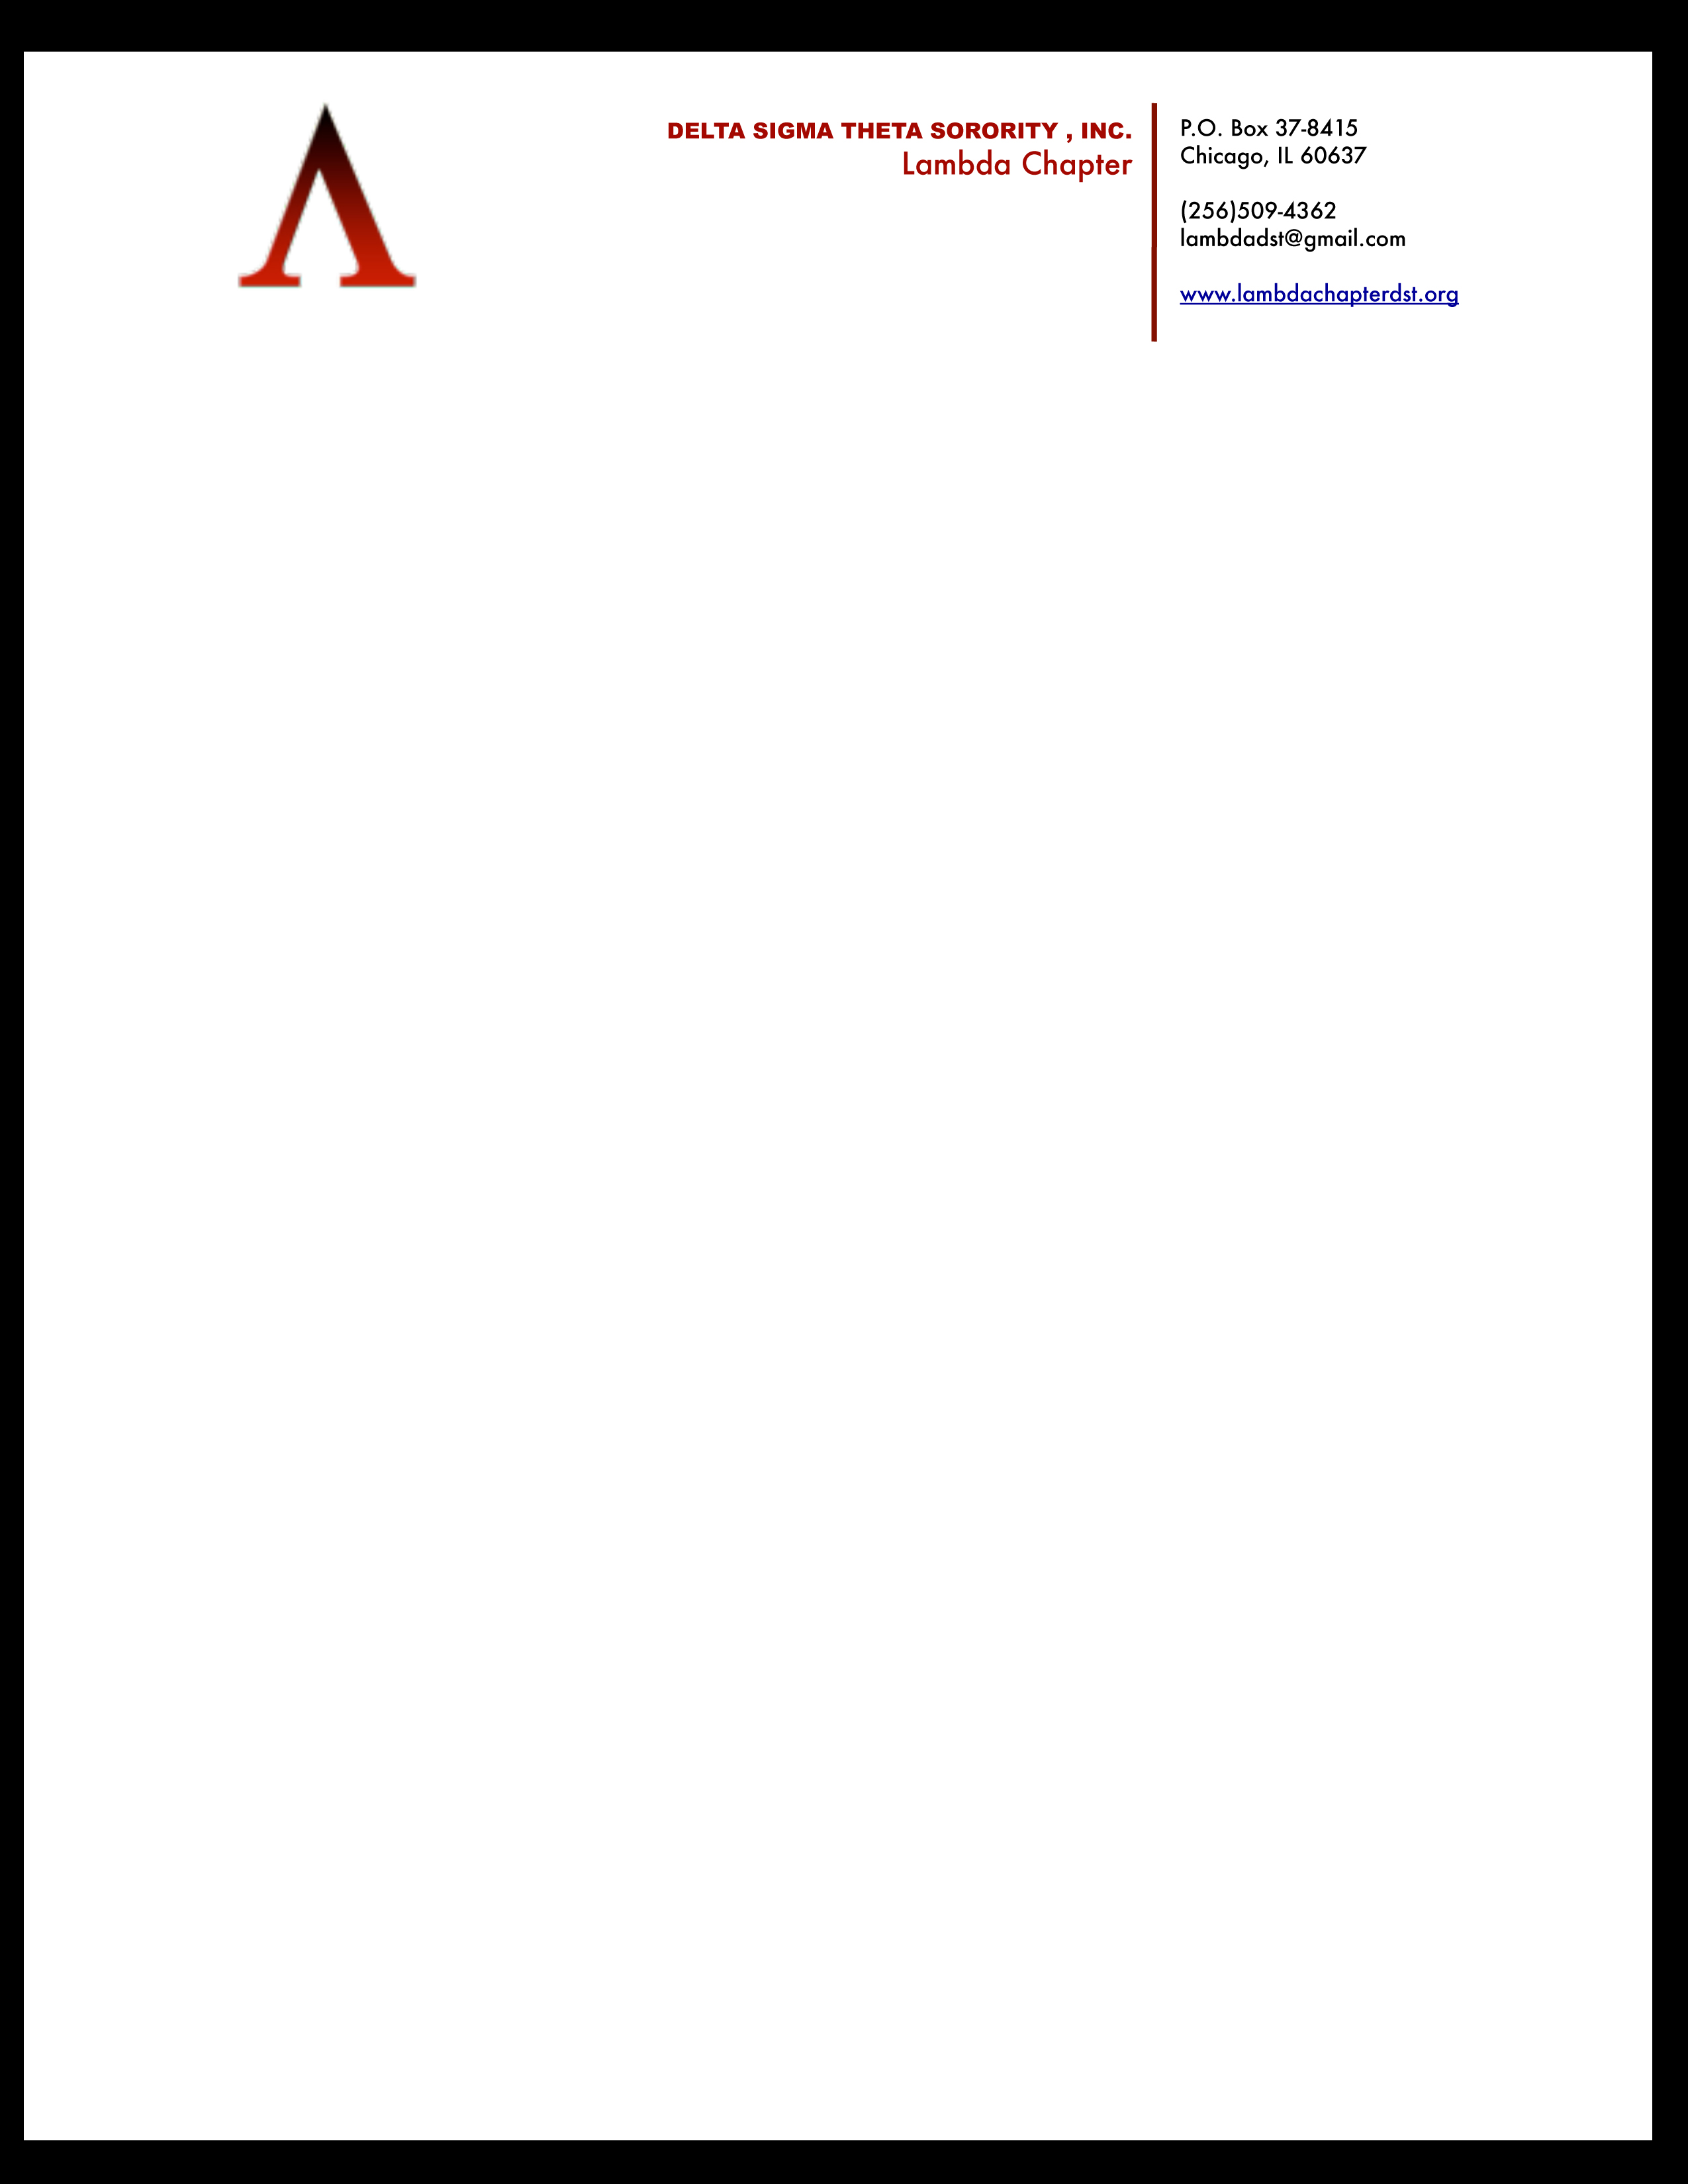 Letterhead Examples With Logo #5306